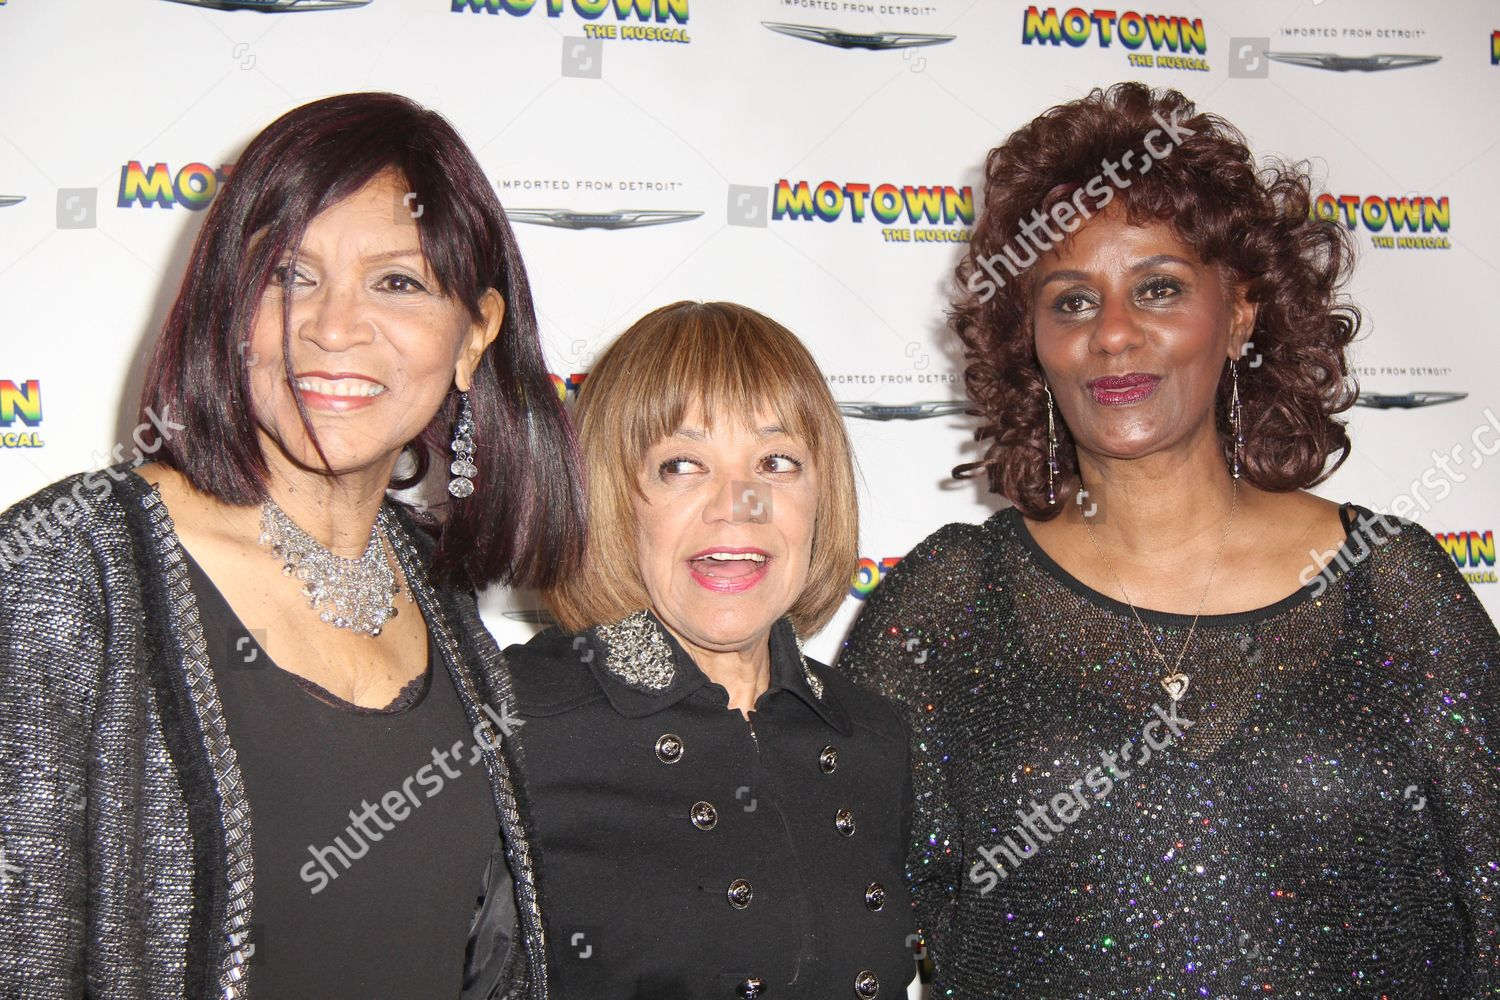 Stock photo of Motown Family Night at Motown: the Musical, New York, America - 05 Apr 2013